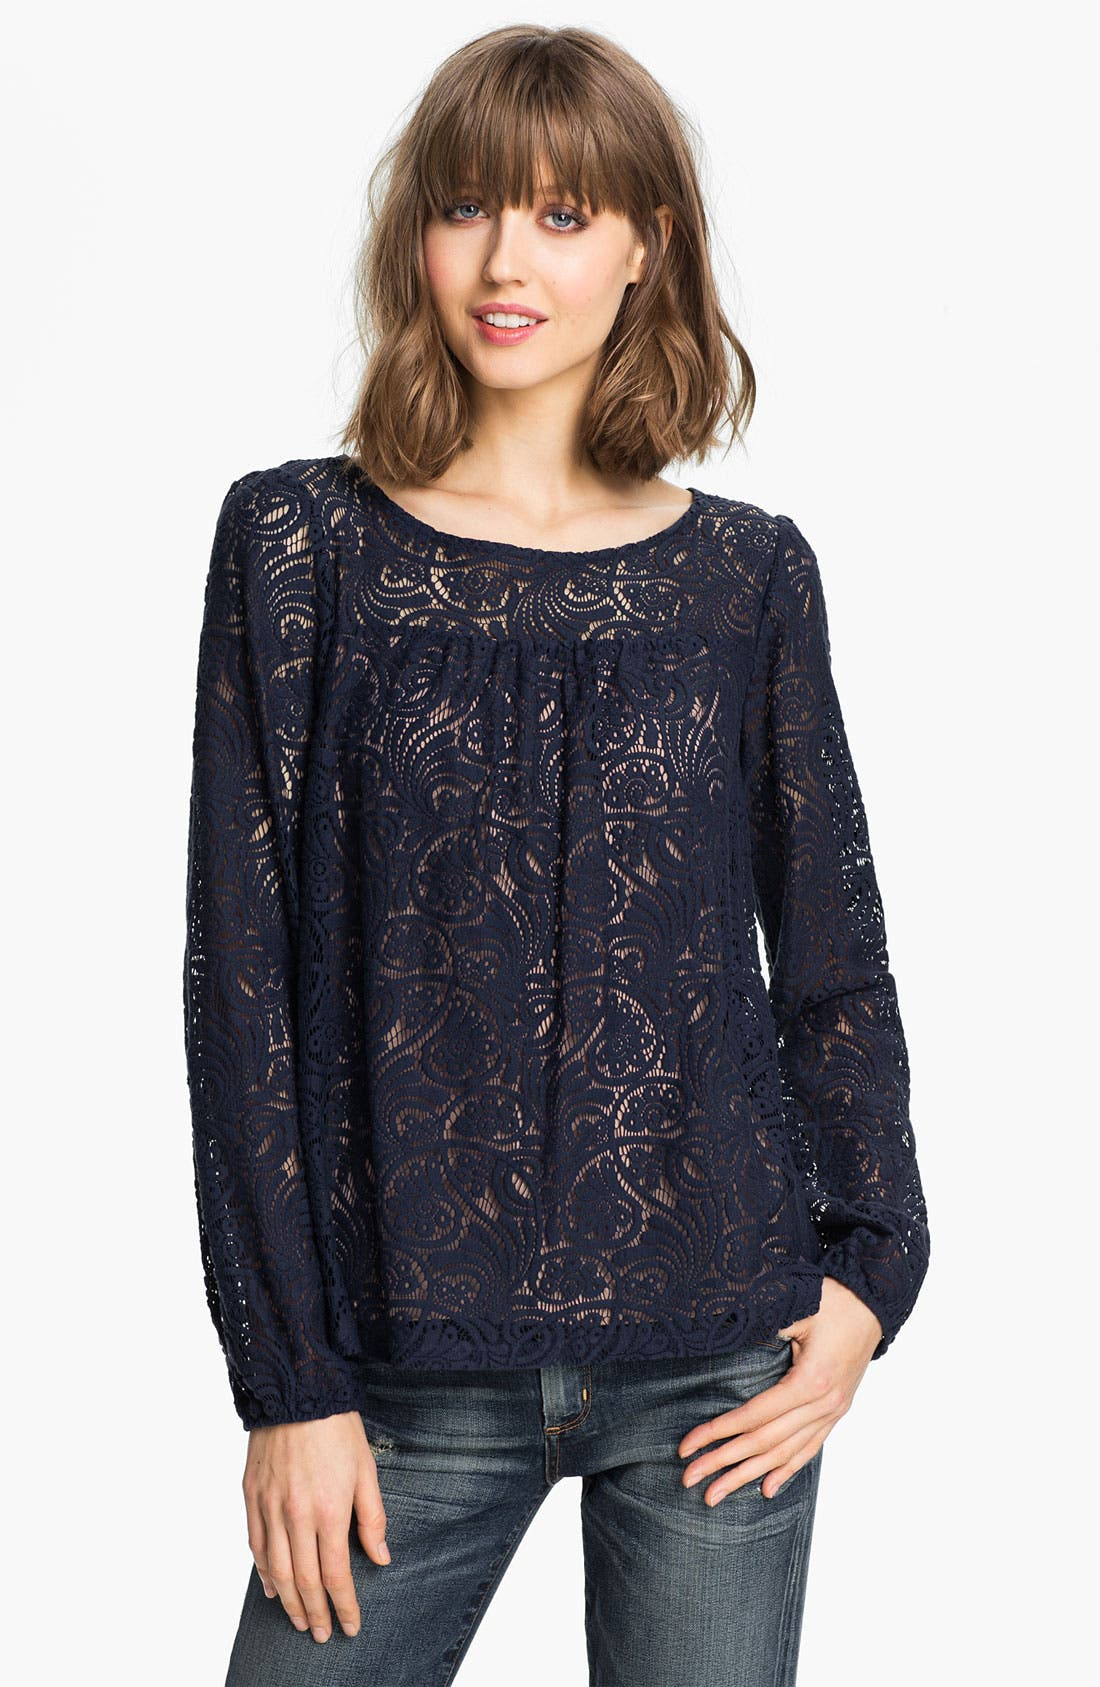 Alternate Image 1 Selected - Ella Moss 'Hannah' Lace Blouse